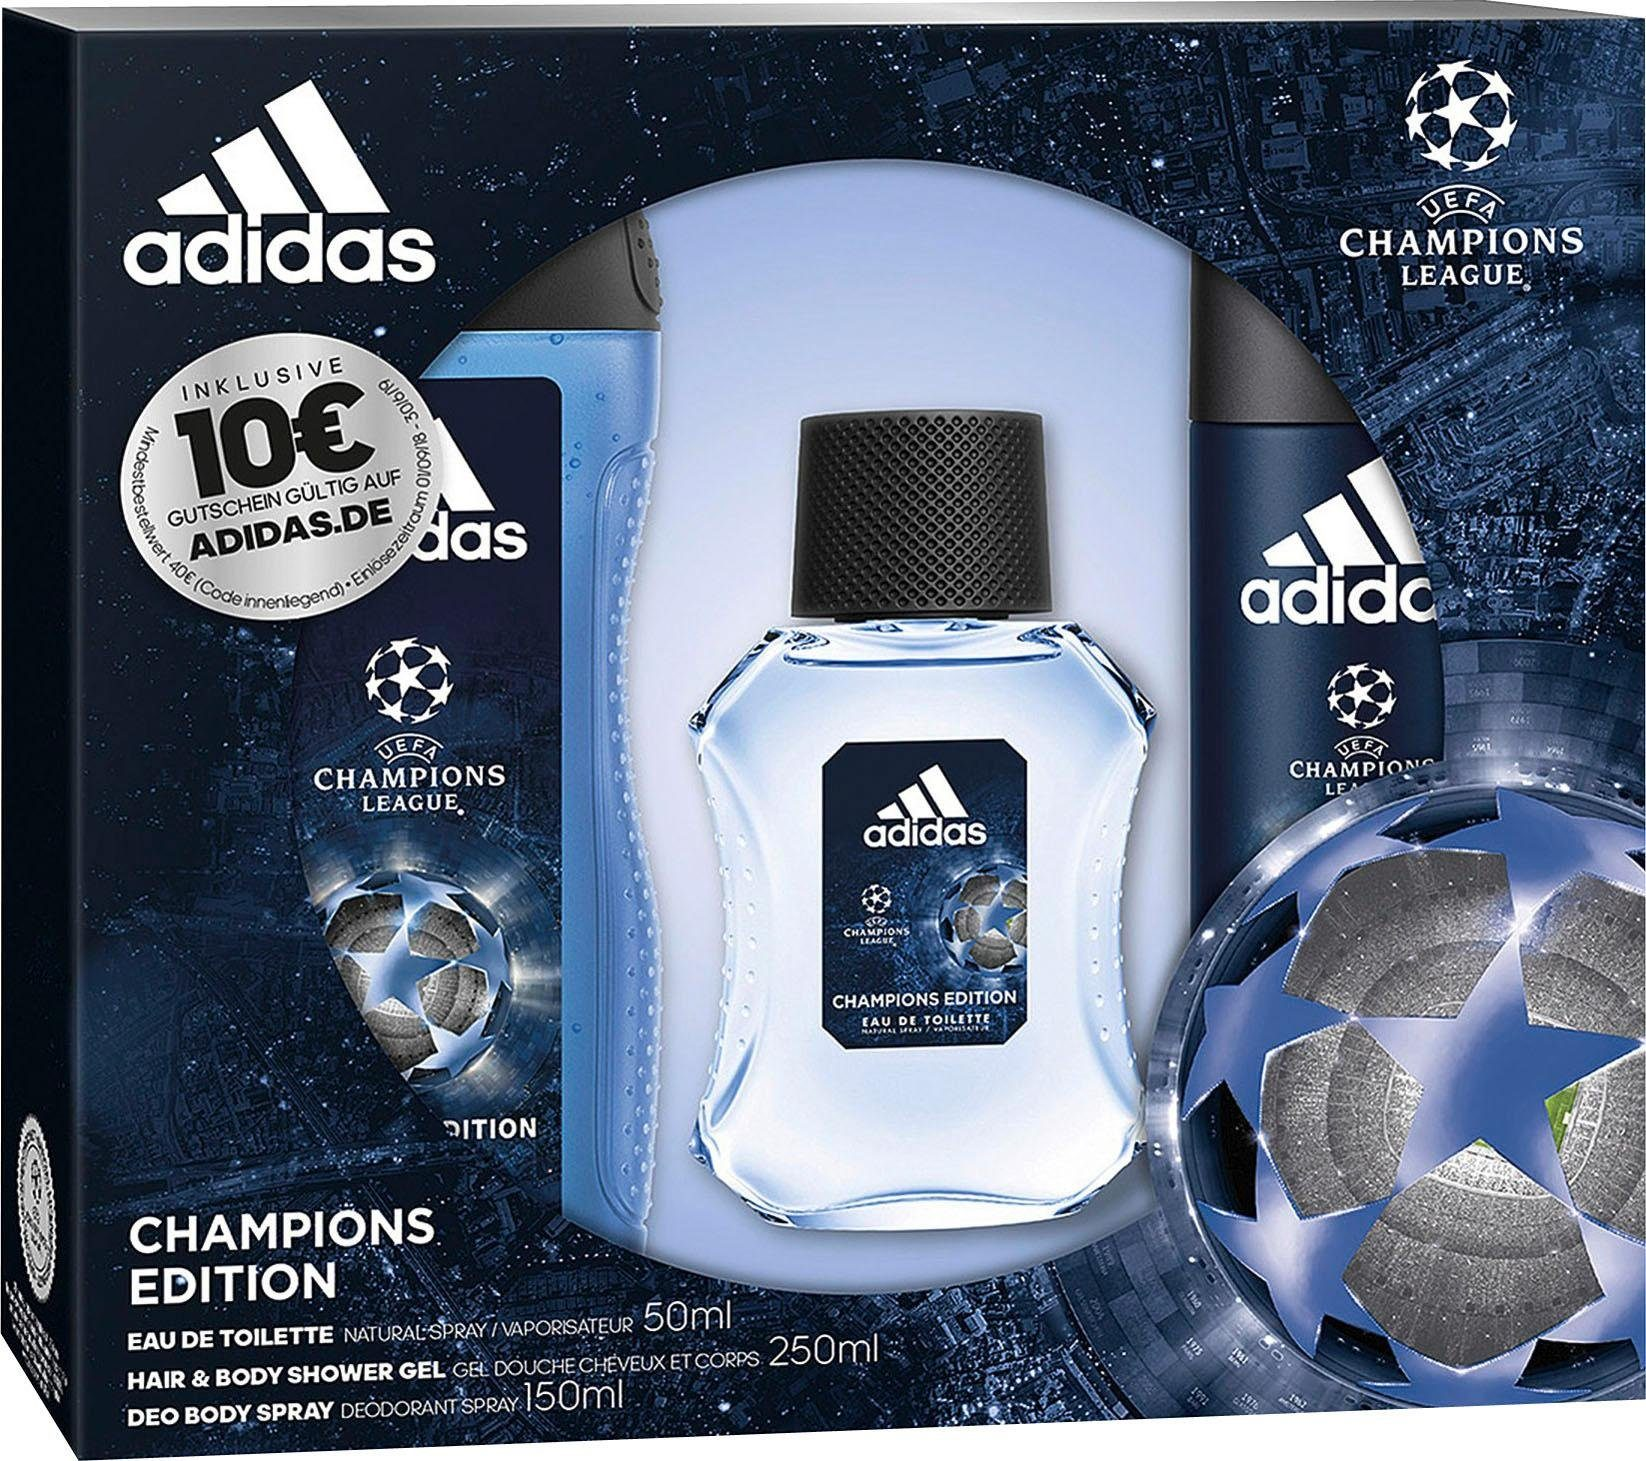 adidas Performance Duft Set »UEFA Champions League Champions Edition«, 3 tlg. online kaufen | OTTO